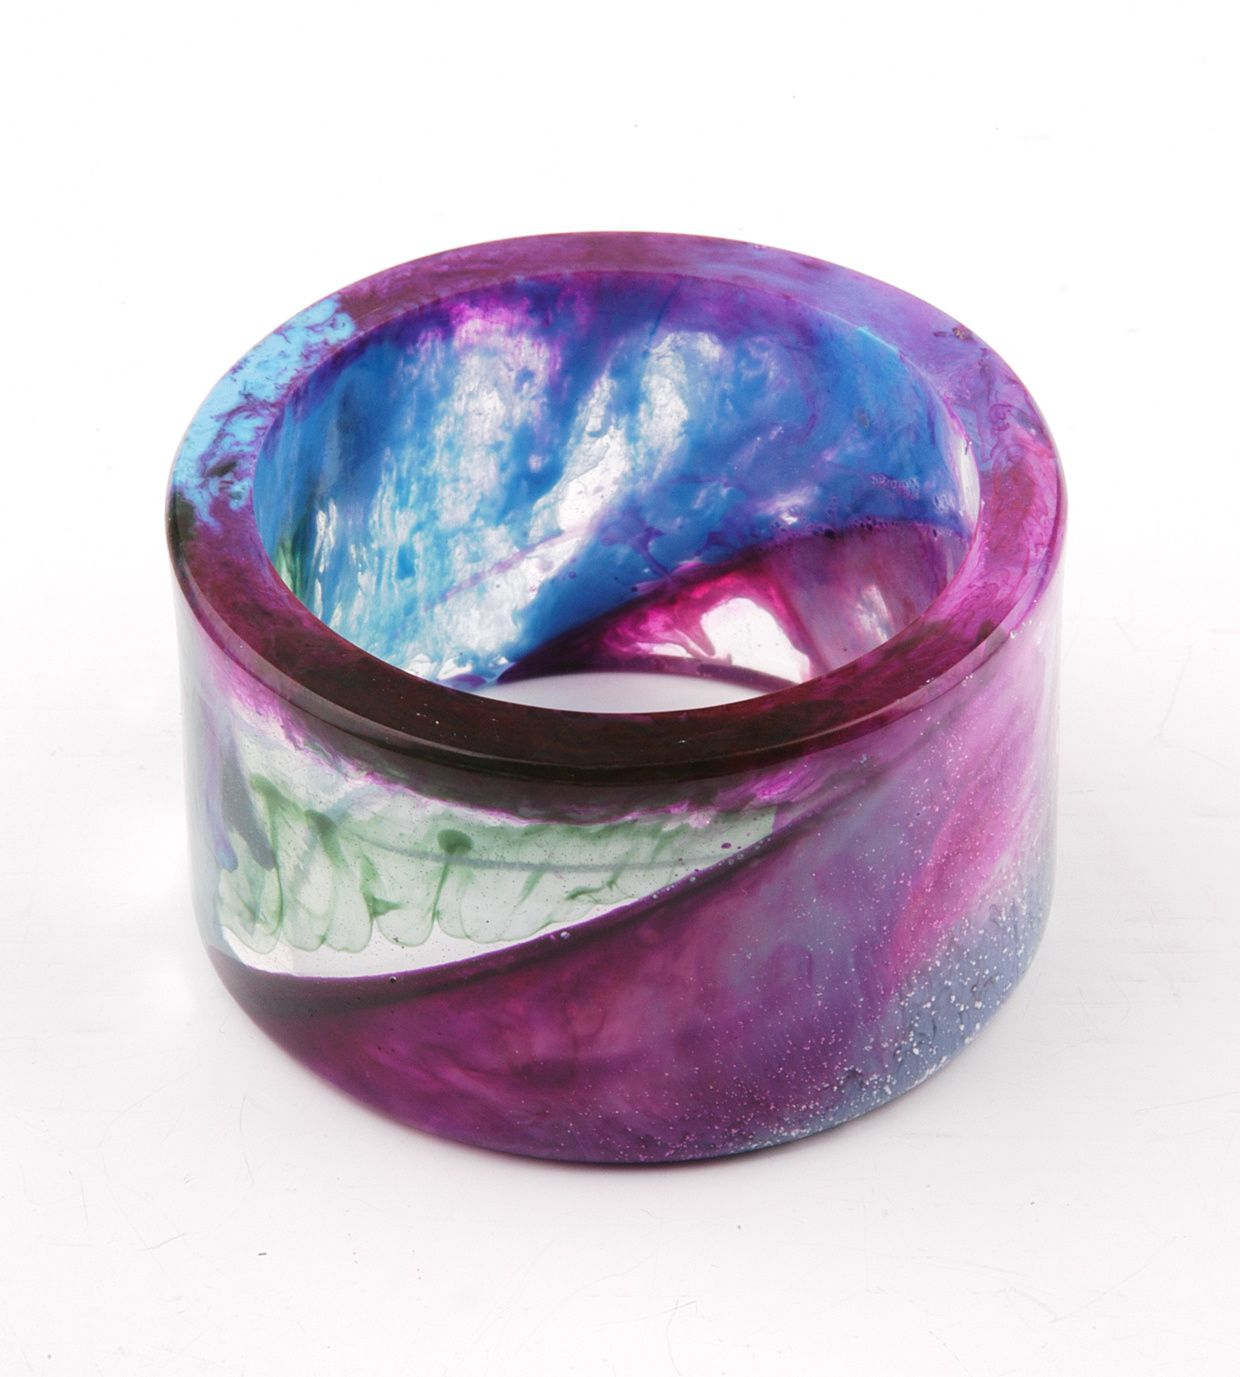 Cloudy color effects in the second version of the resin bangle